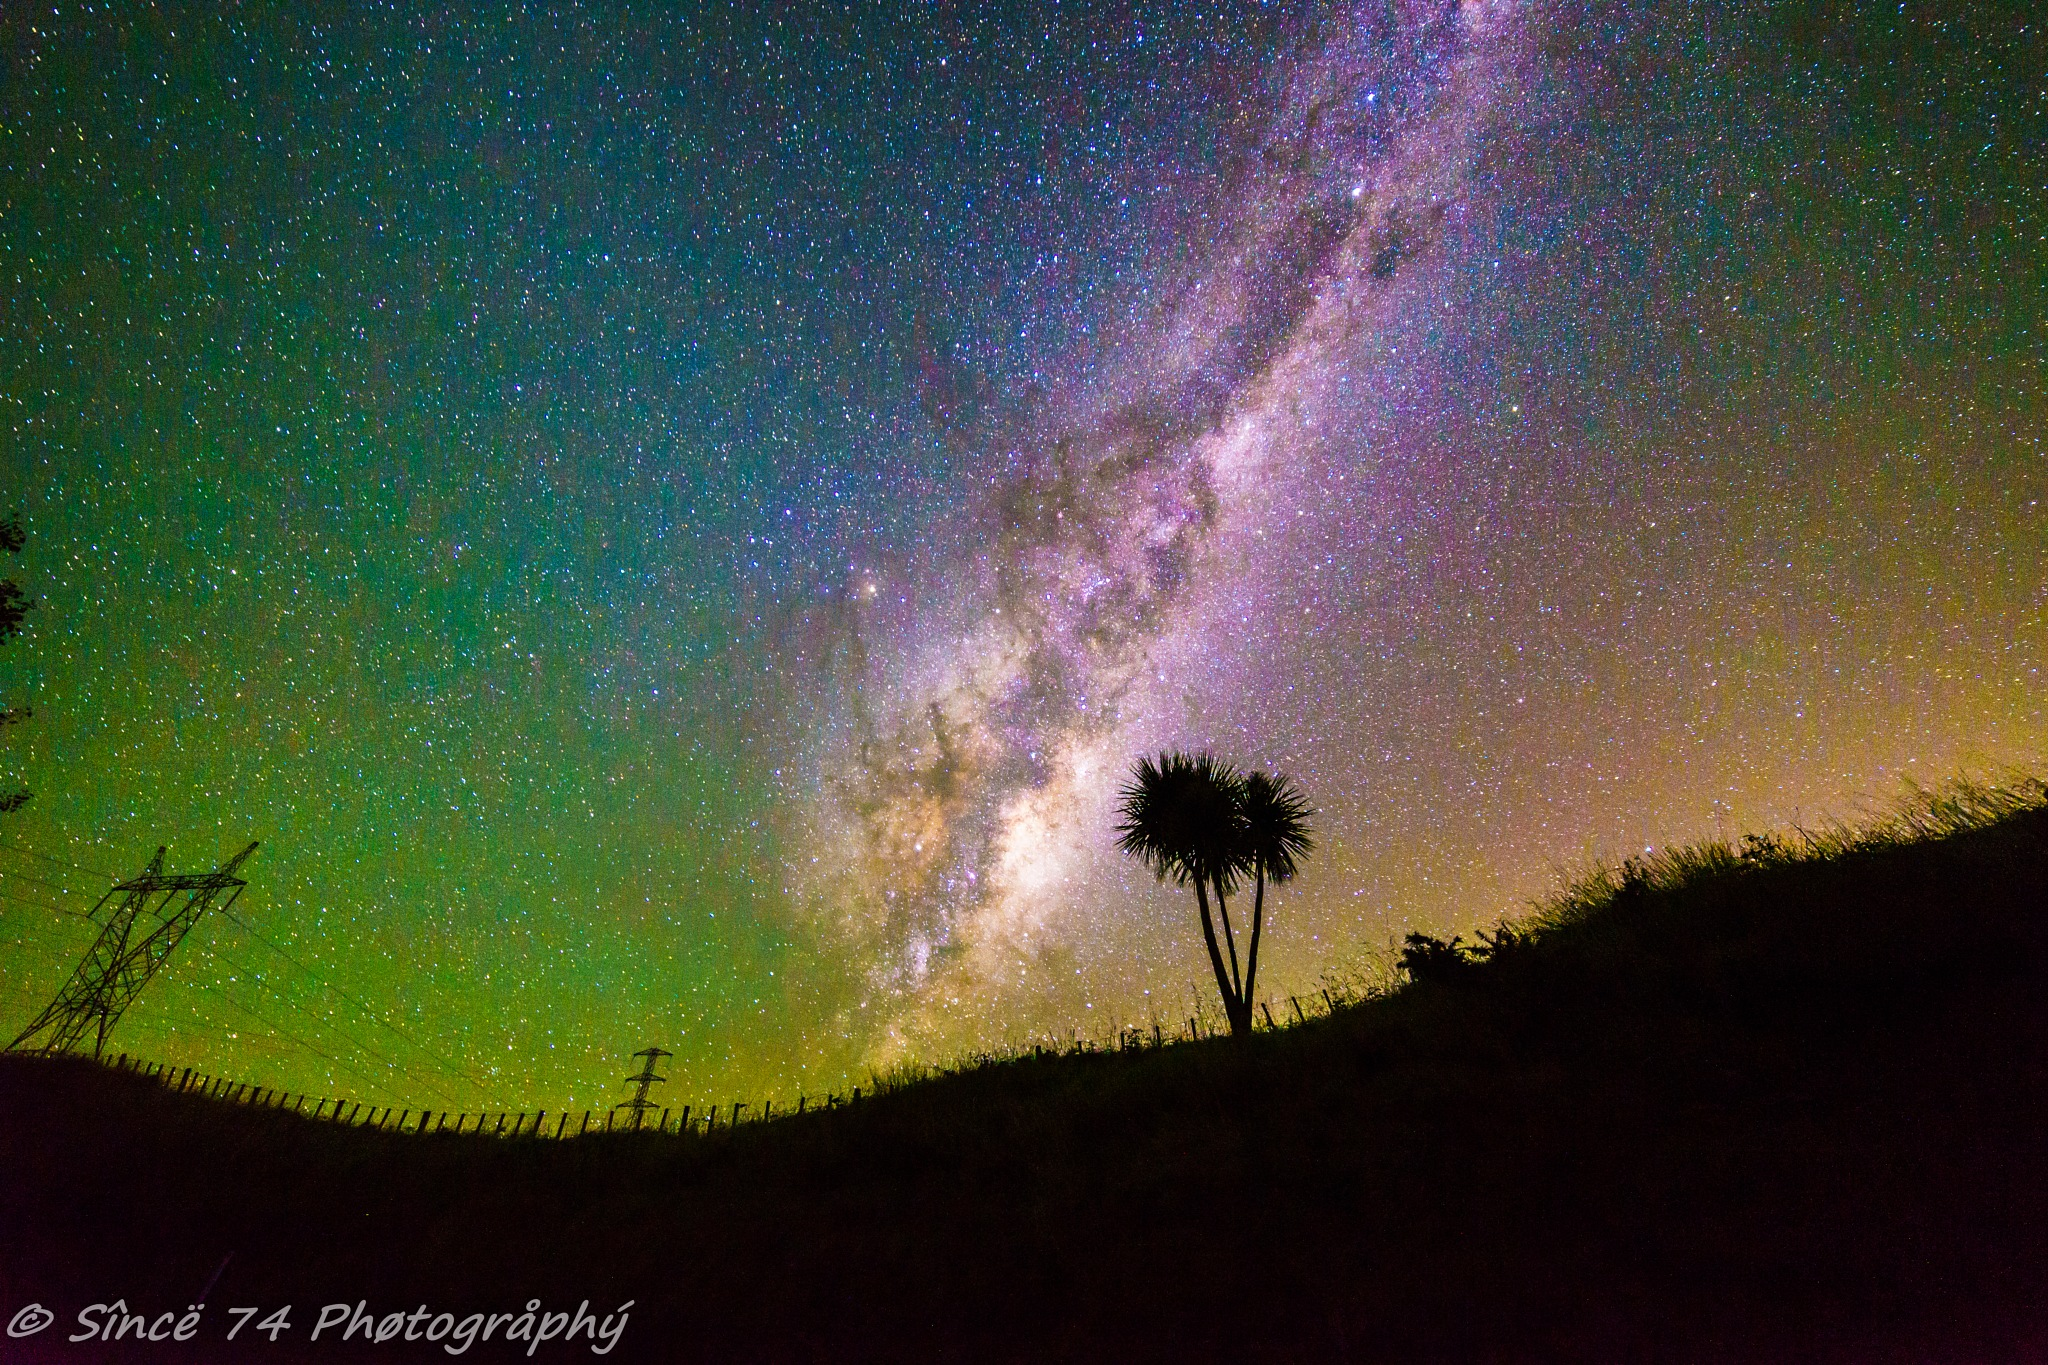 Cabbage tree milky by Since 74 Photography